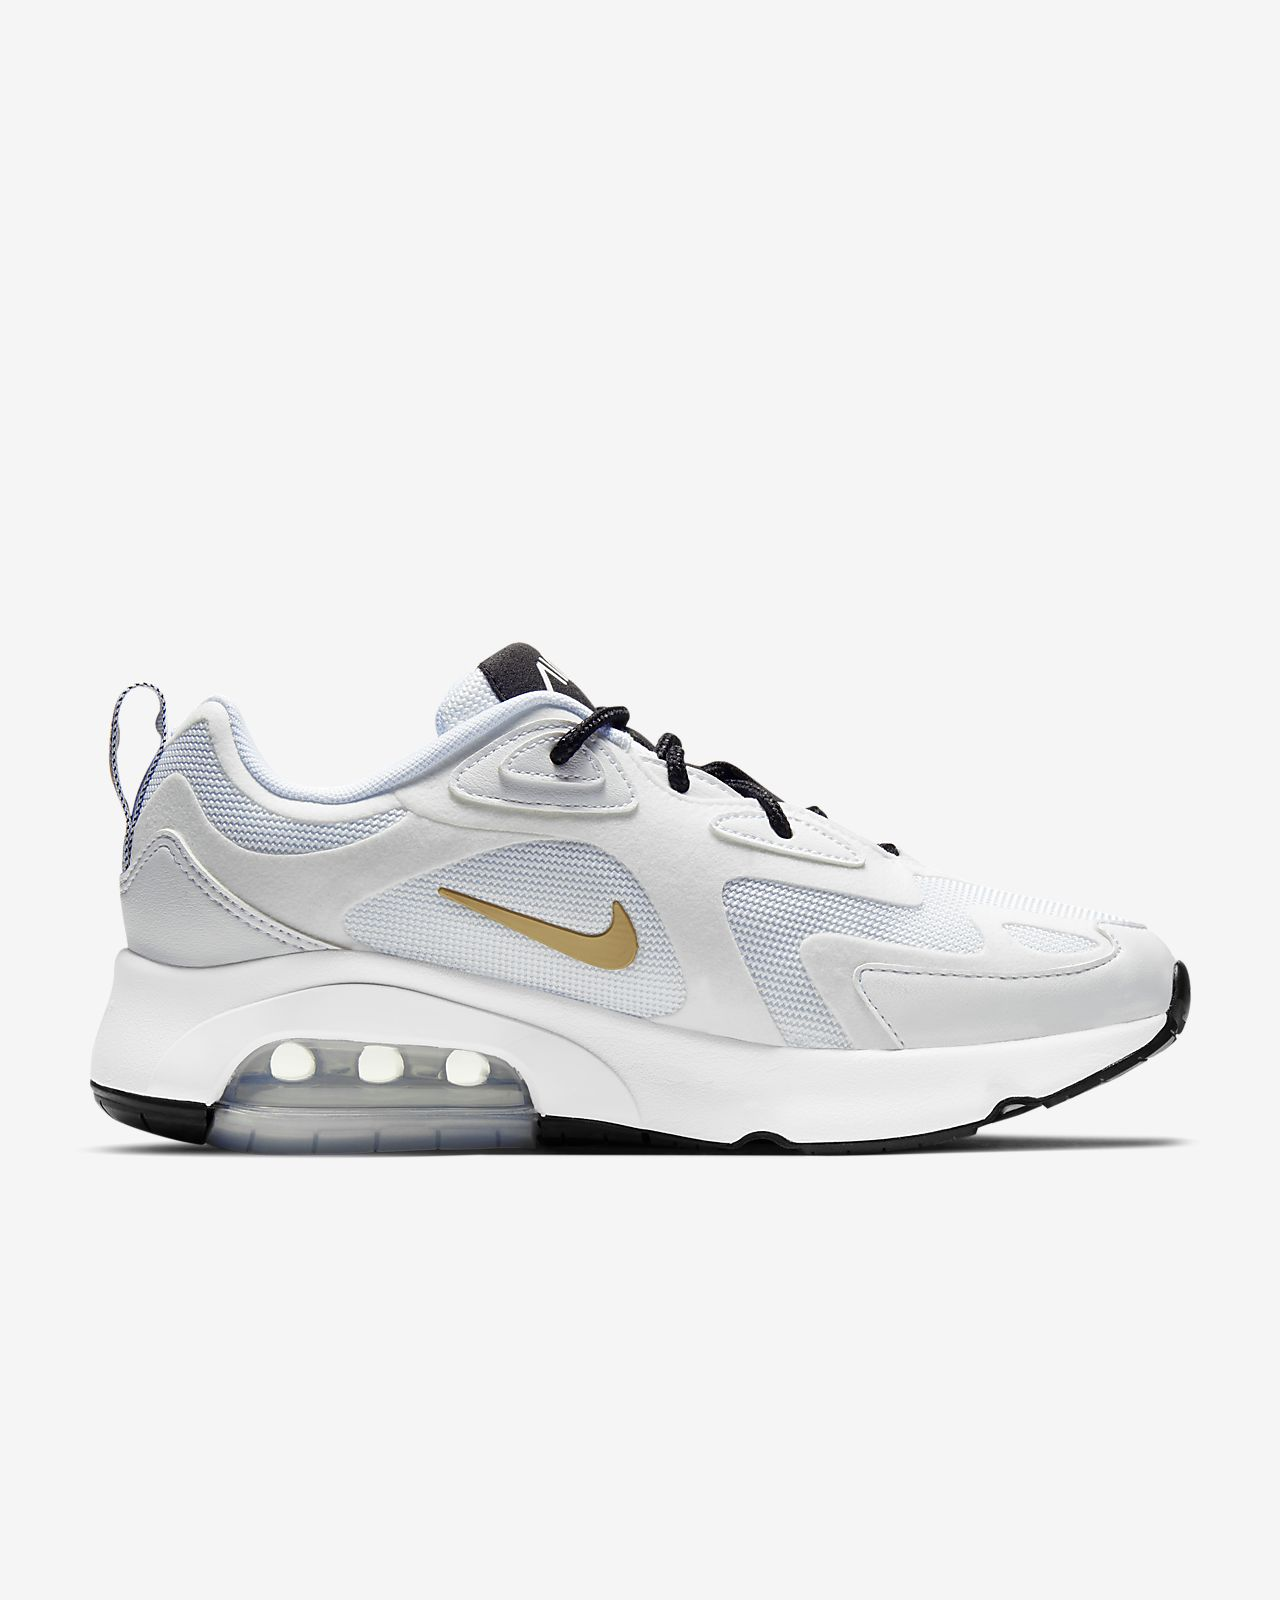 Nike 200 Pour Femme Chaussure Max Air WHbe2YDE9I